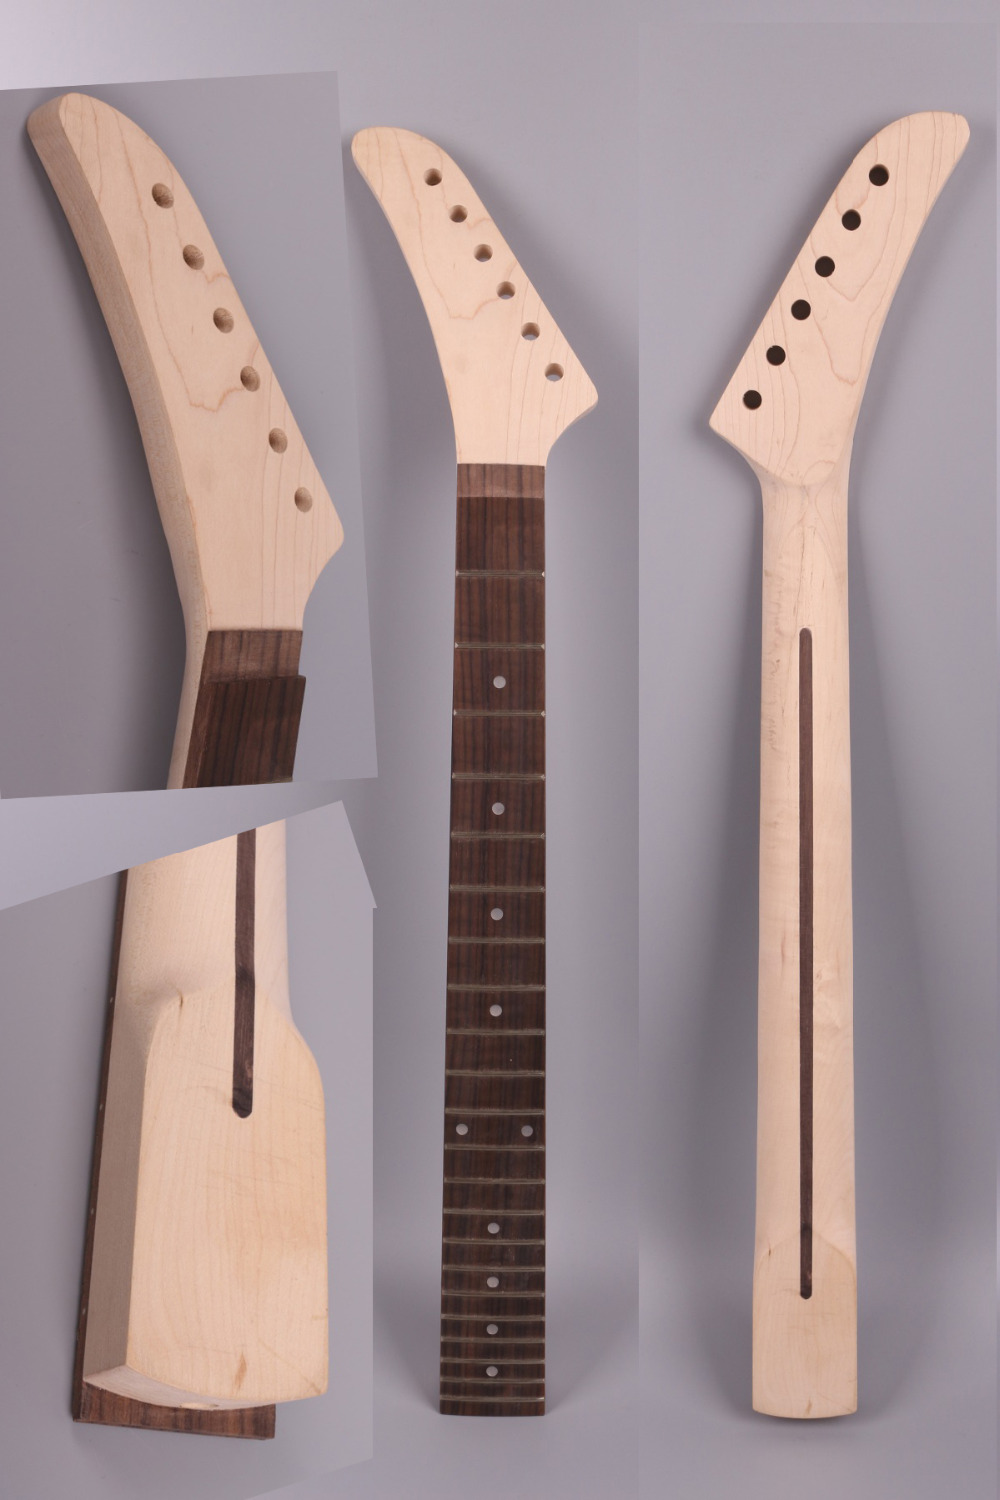 electric guitar neck 25.5 inch 22 fret maple banana headstock rosewood fingerboard Left hand one tl electric guitar neck 25 5 inch 22 fret maple made and rosewood fingerboard bindding also have 21 fret page 7